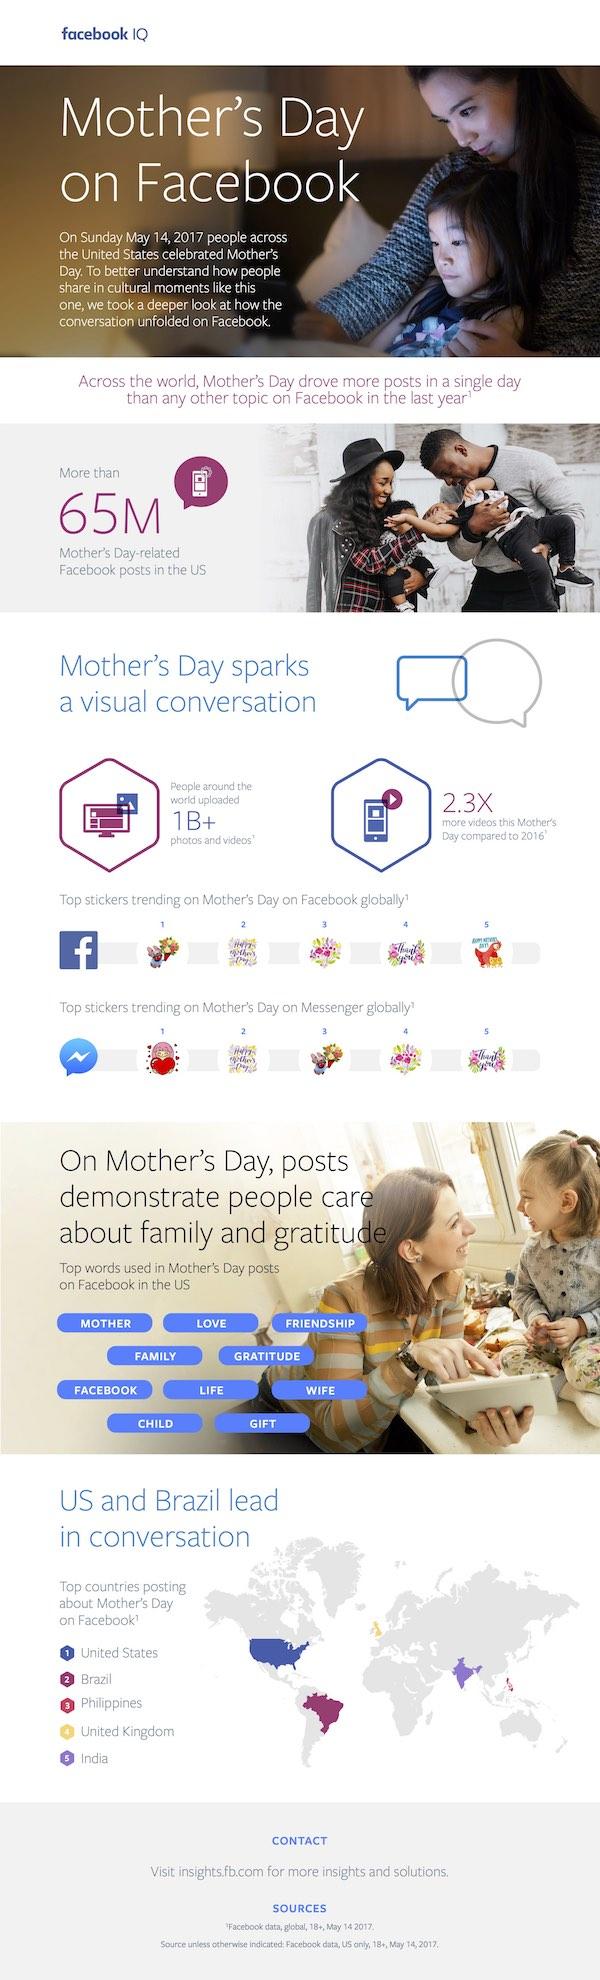 Facebook Mothers Day Infographic